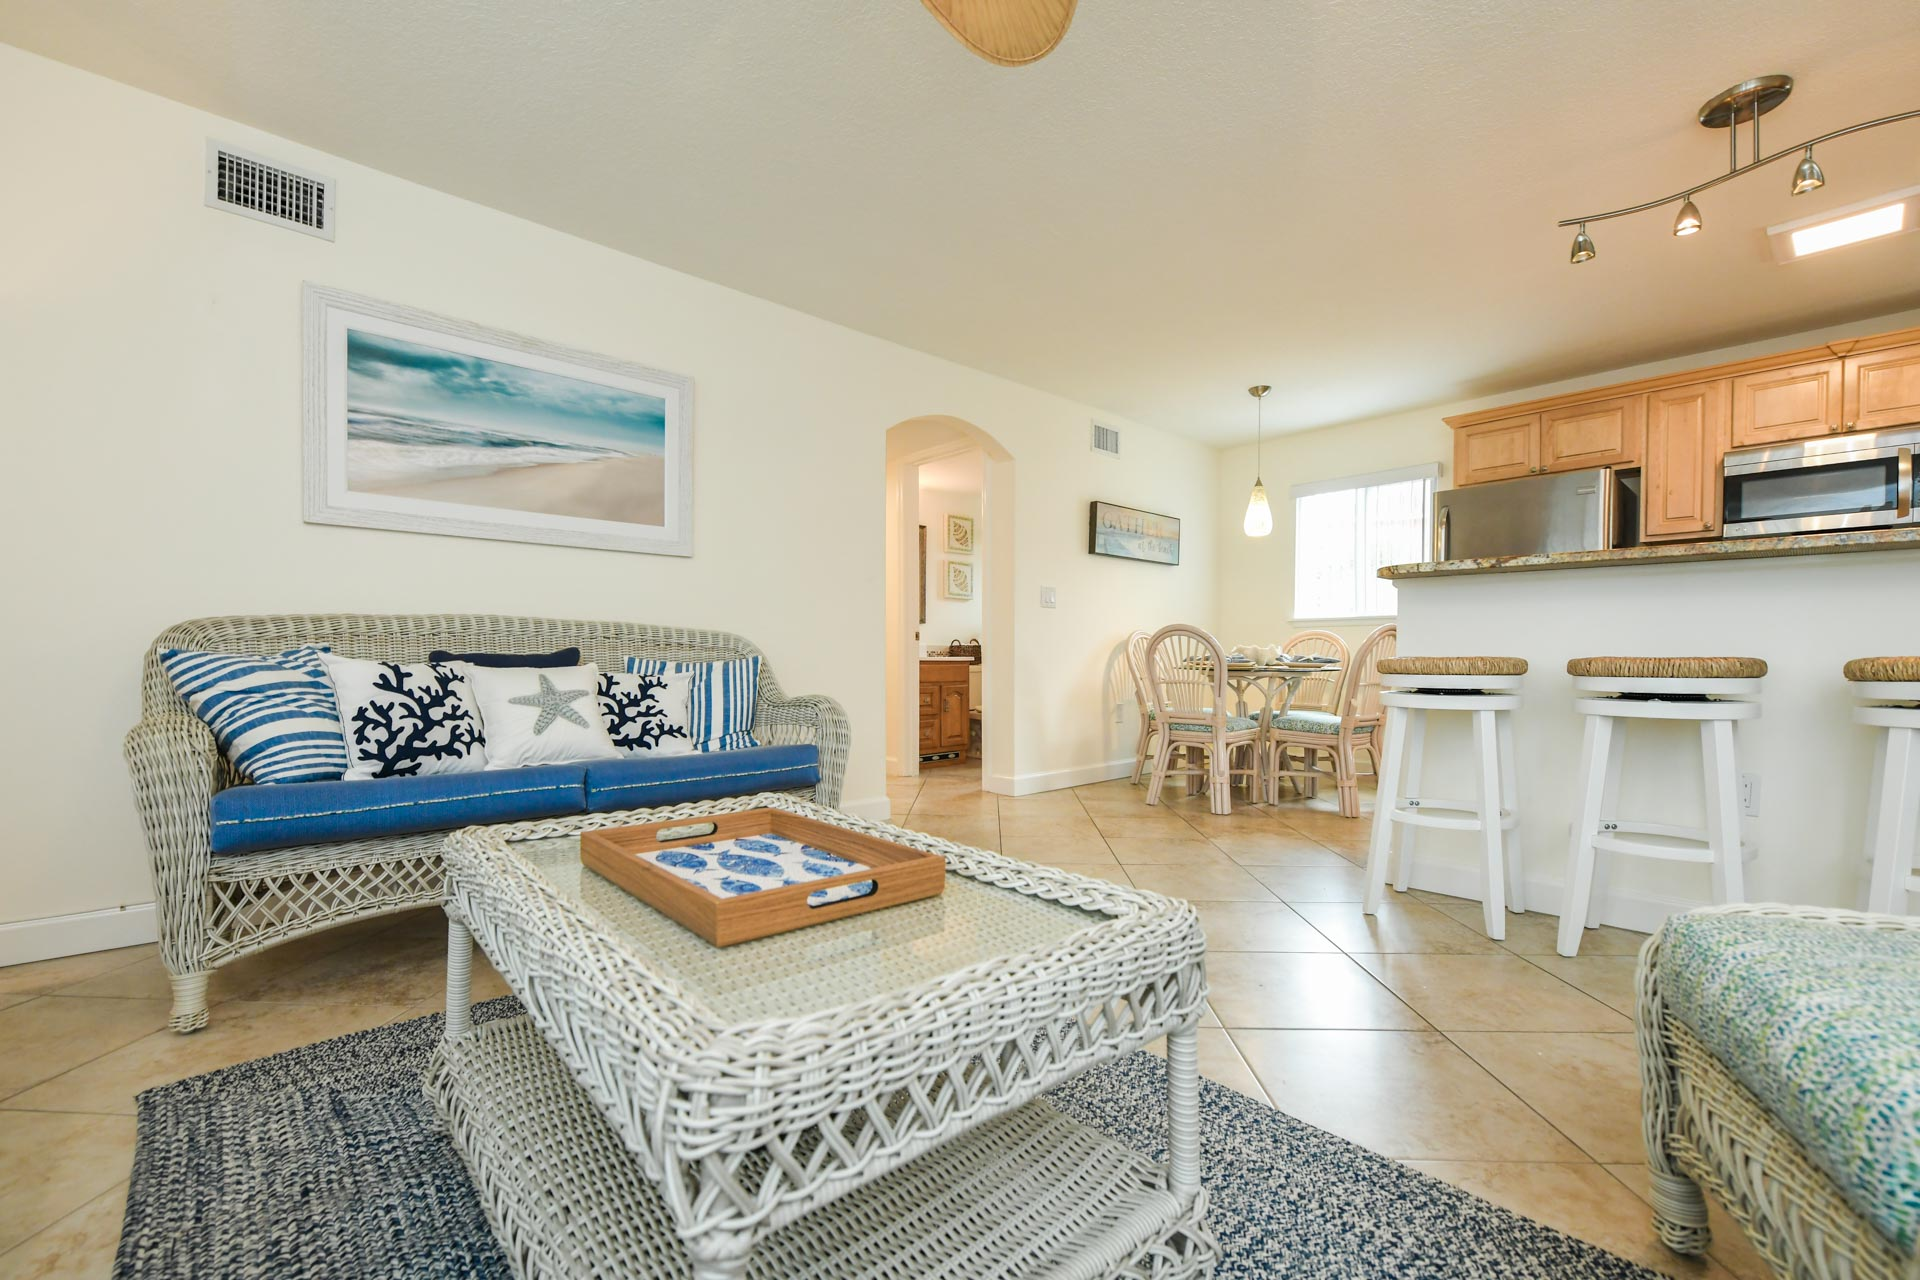 Open floor plan with living room, kitchen and dining area